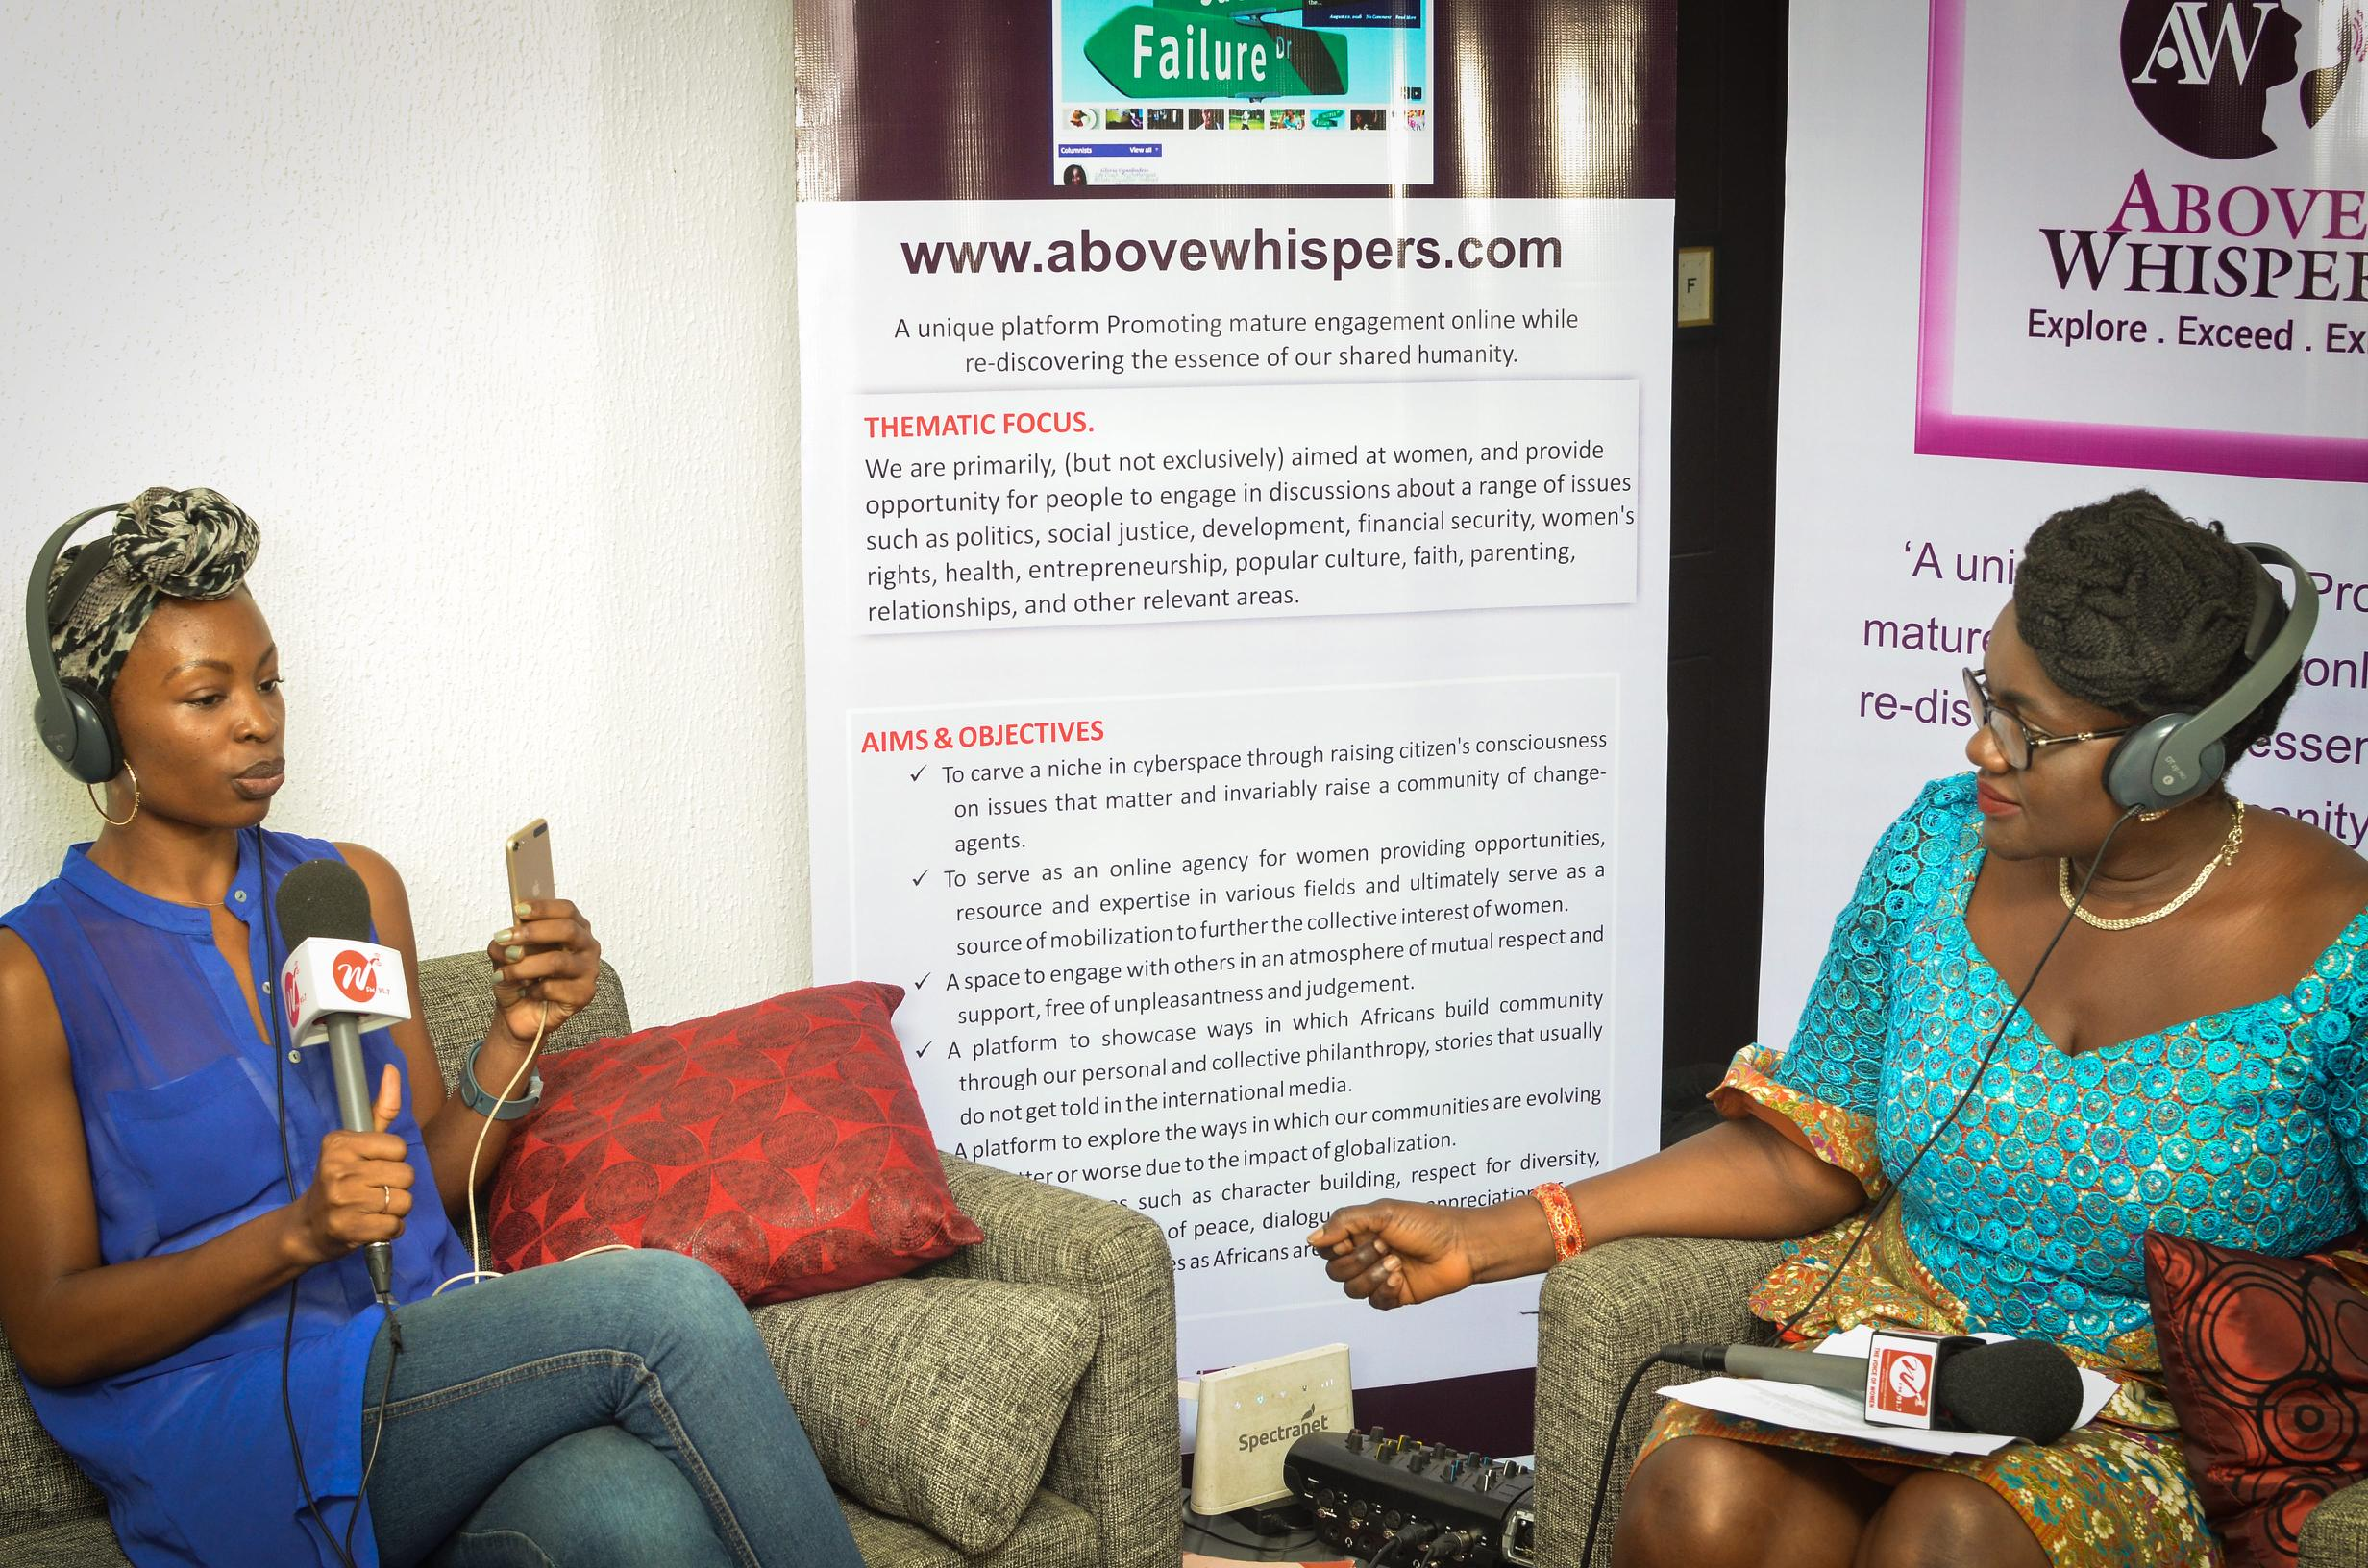 With the host of Above Whispers on Air on WFM 91.7FM, Regina Chris Ogbodo